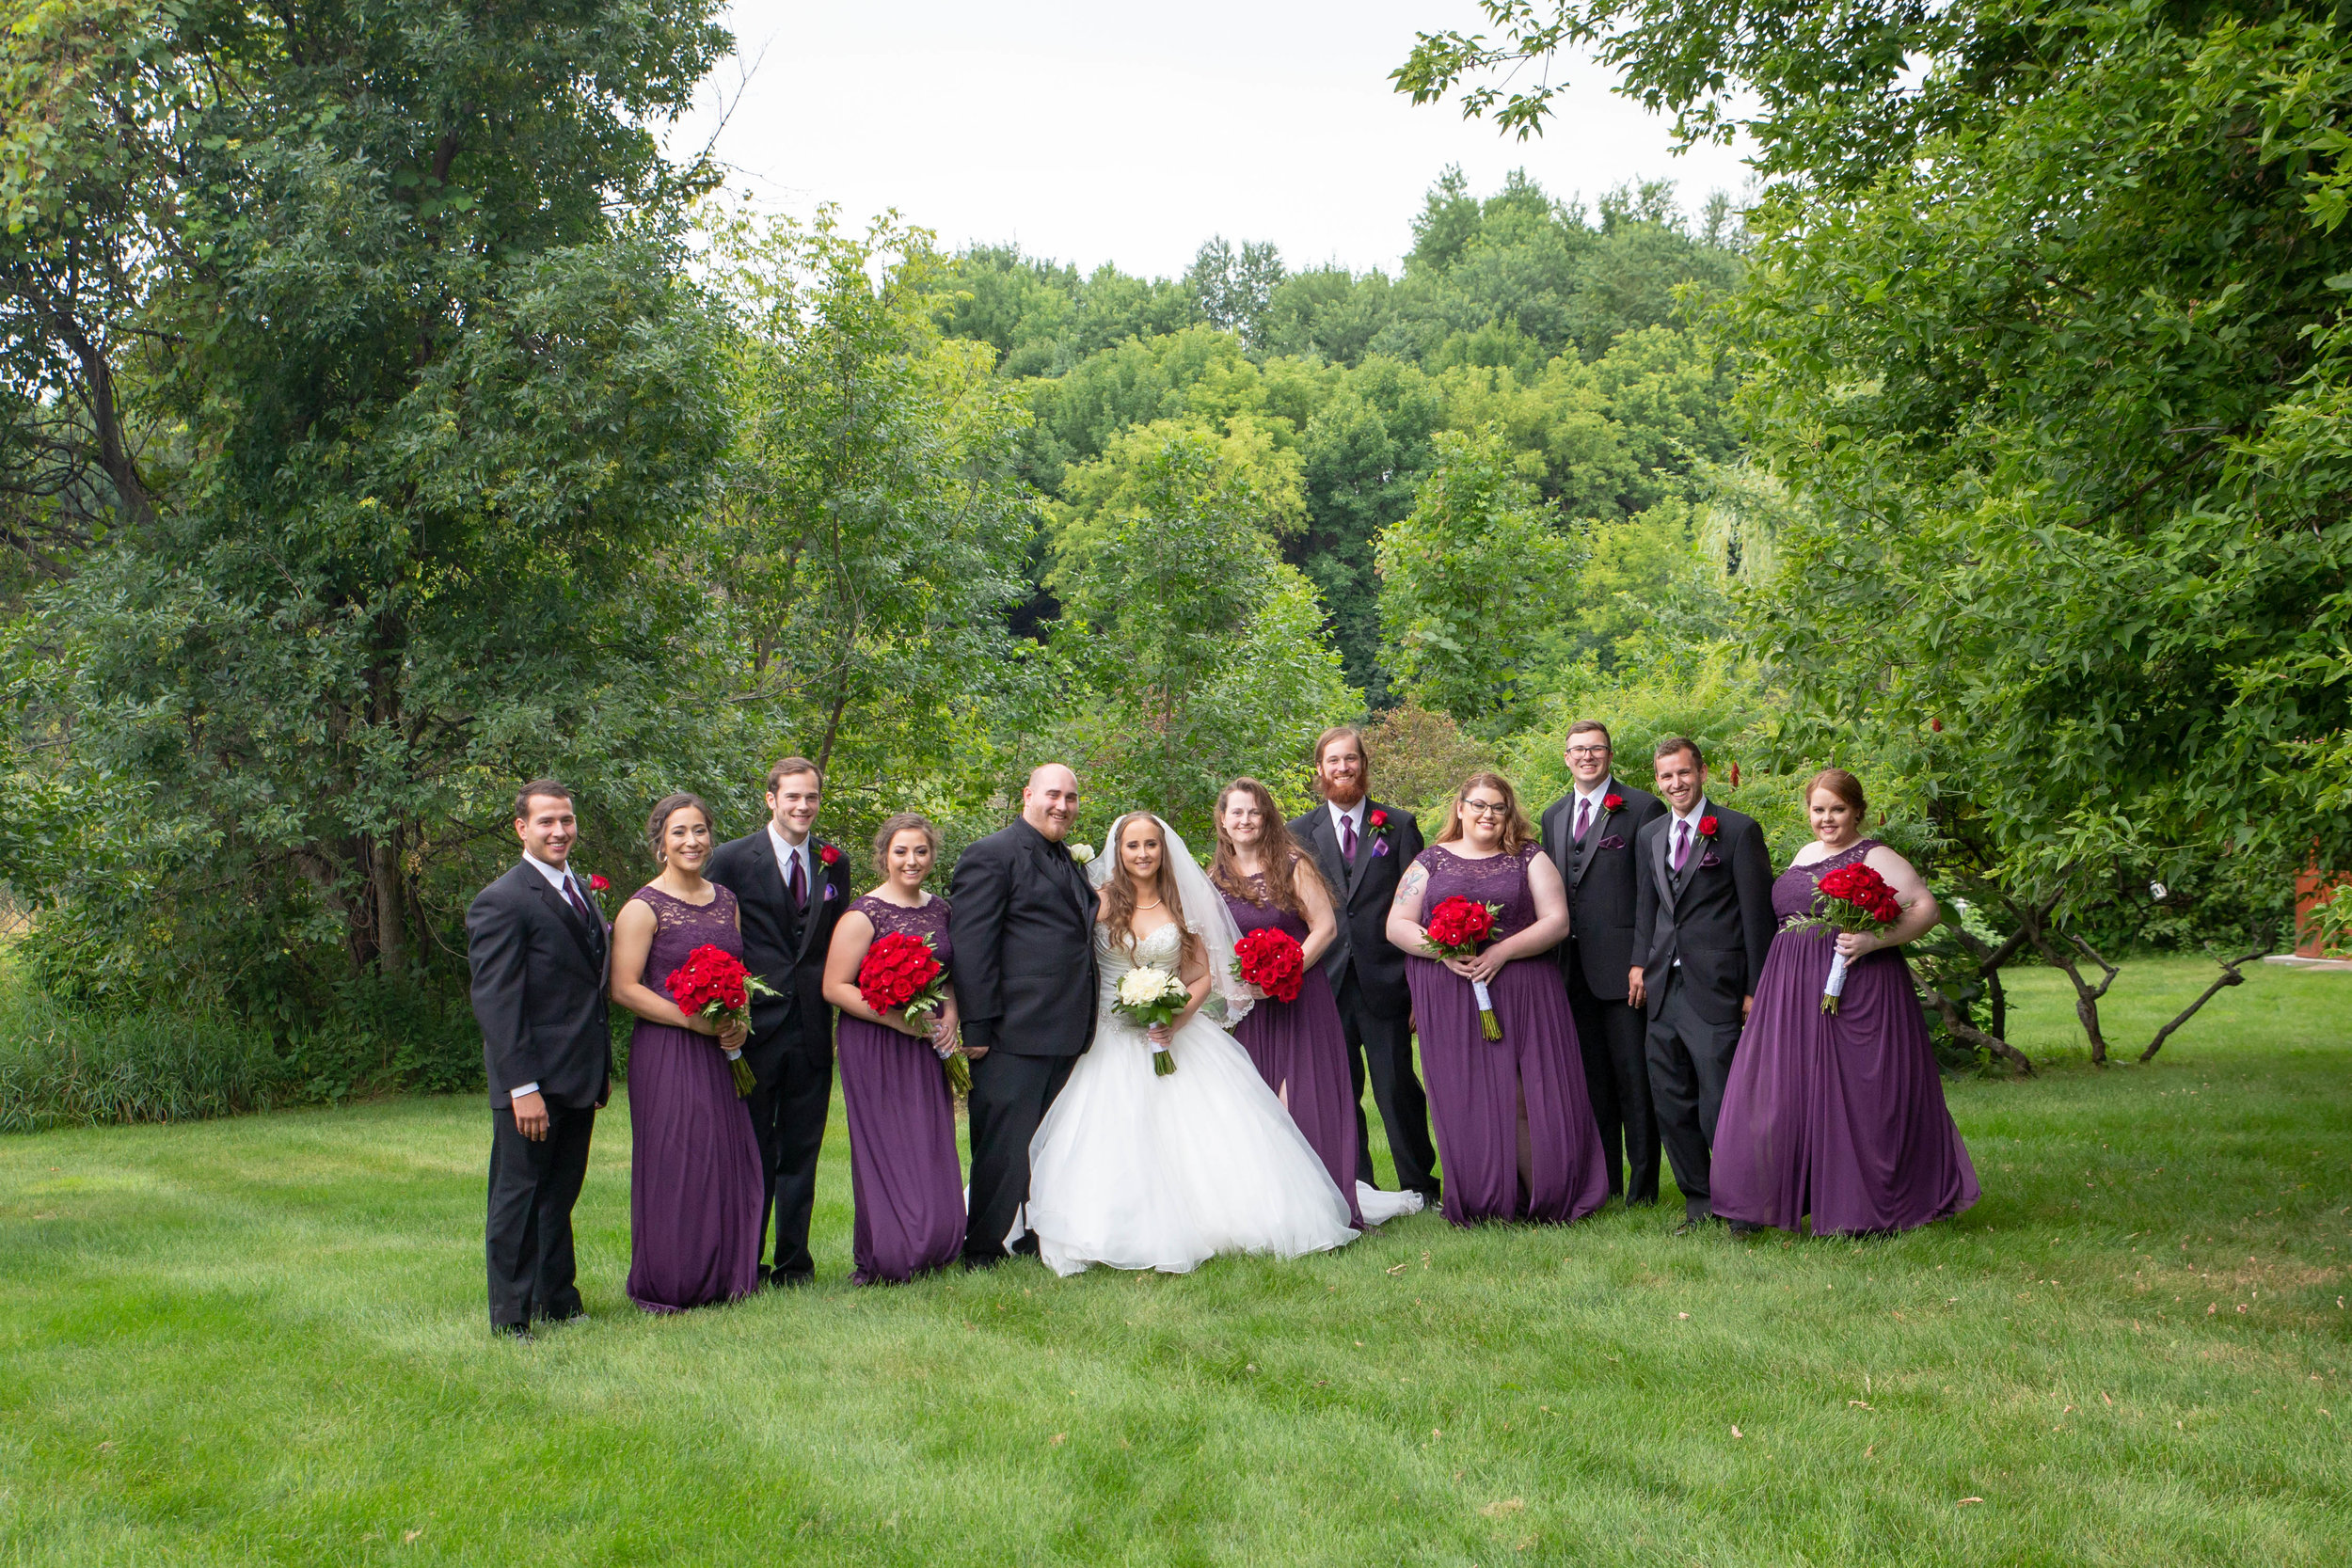 Cindyrella's Garden, Fab Weddings, outdoor Minnesota ceremony, Rosemount wedding, south metro, wedding party